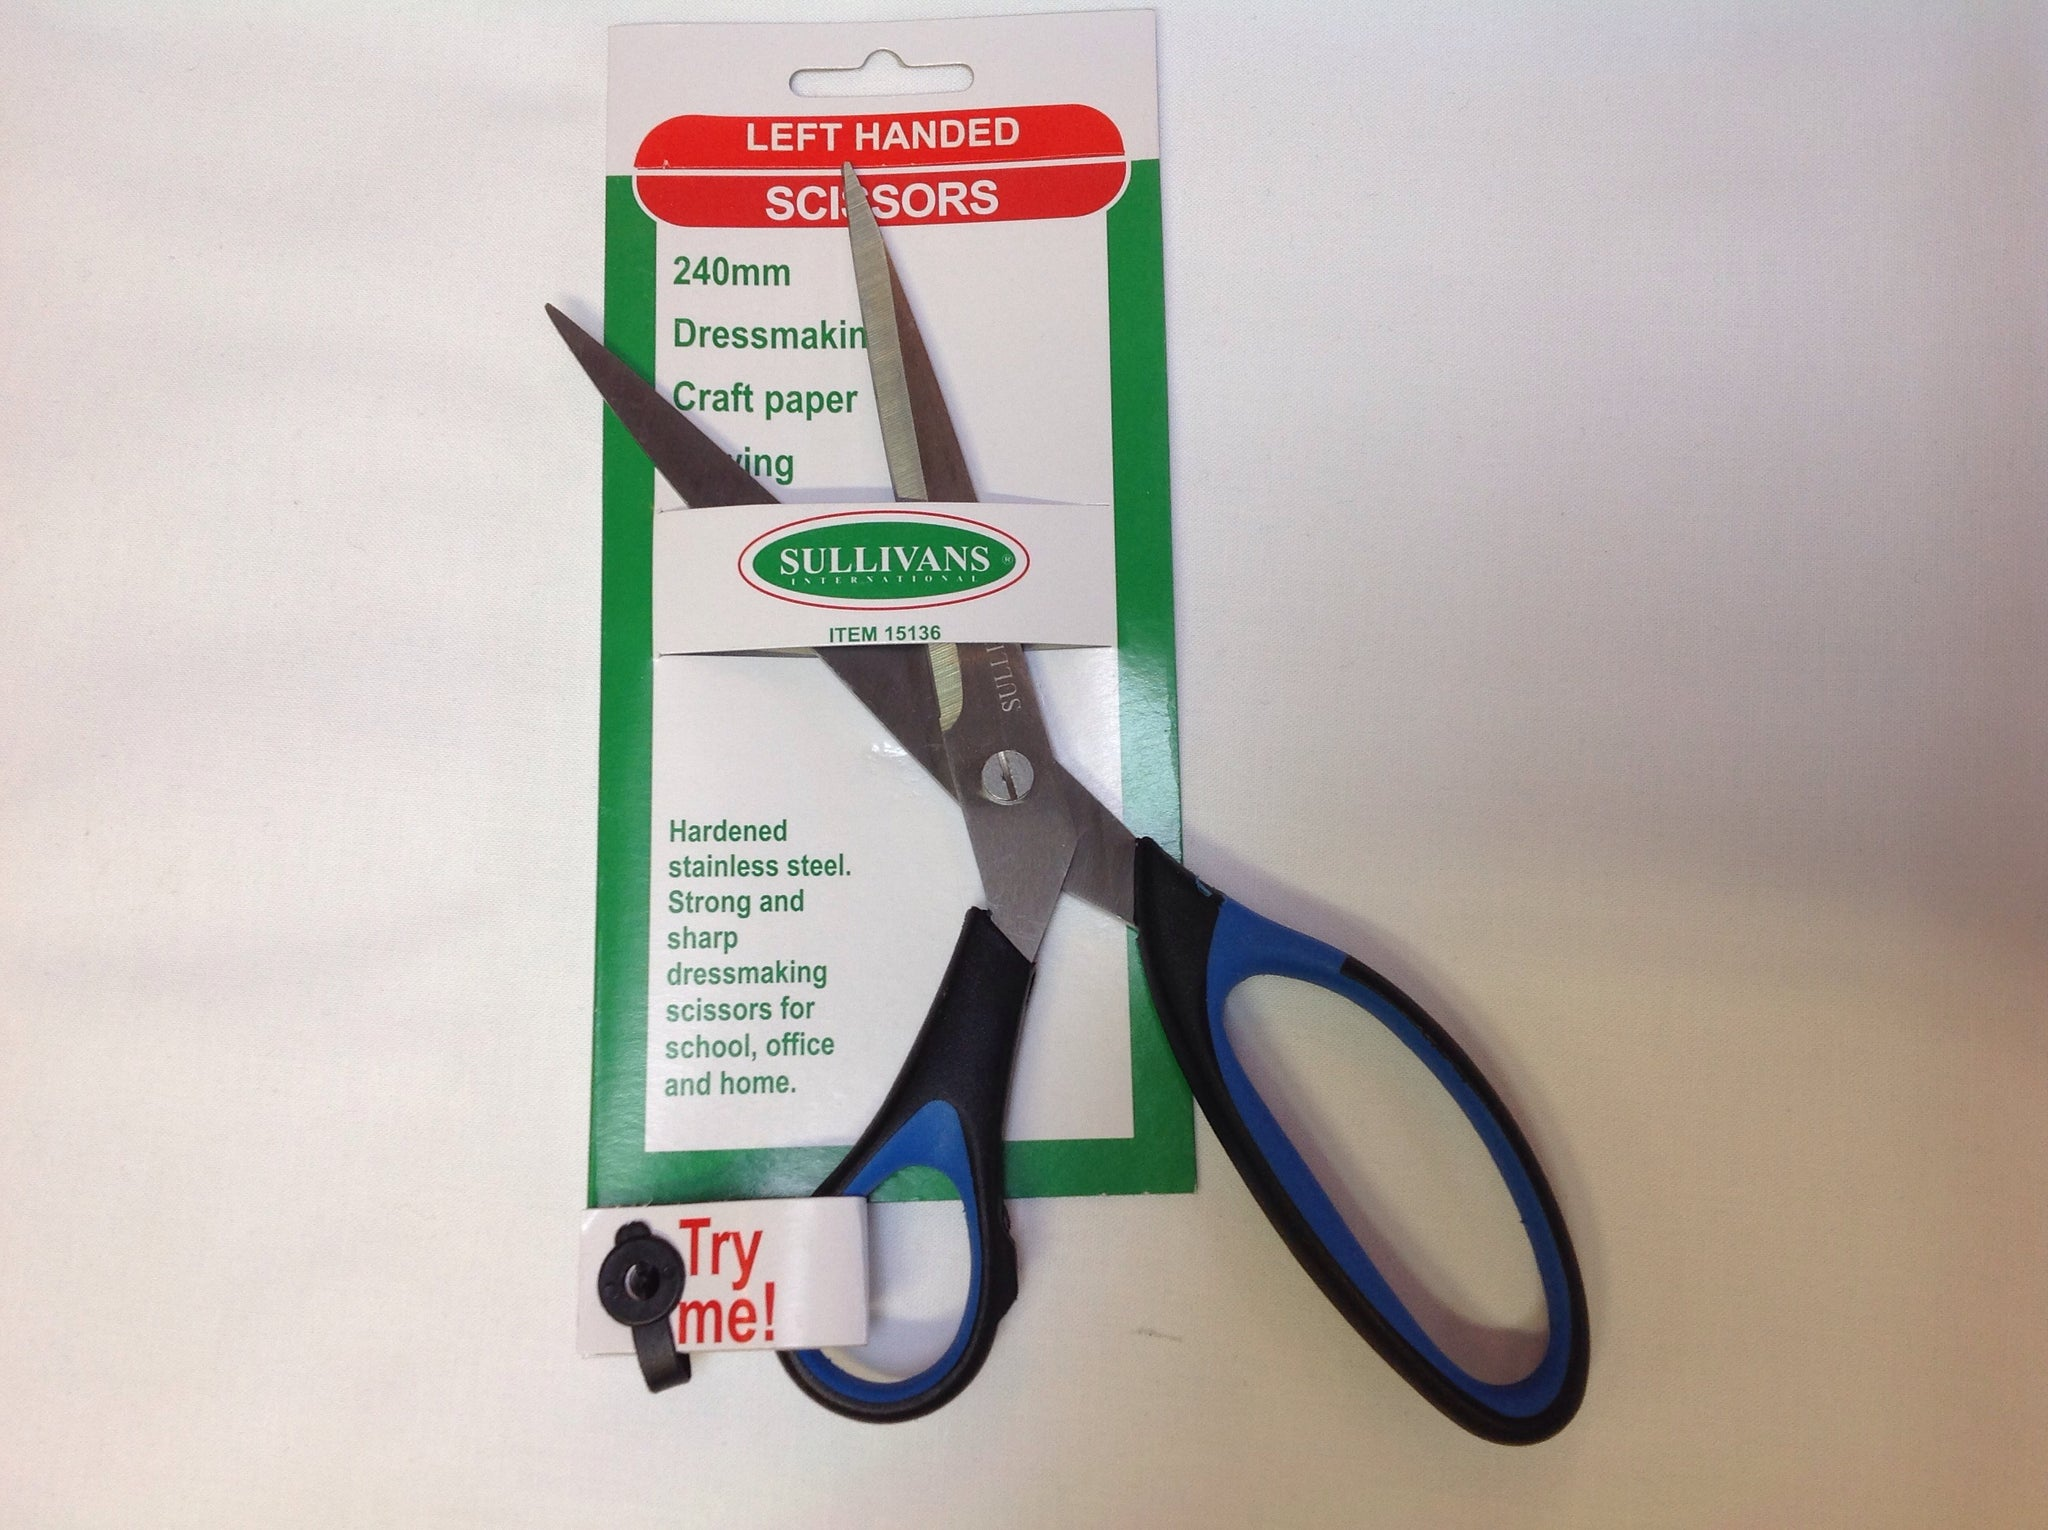 Sullivans - Left-handed Scissors